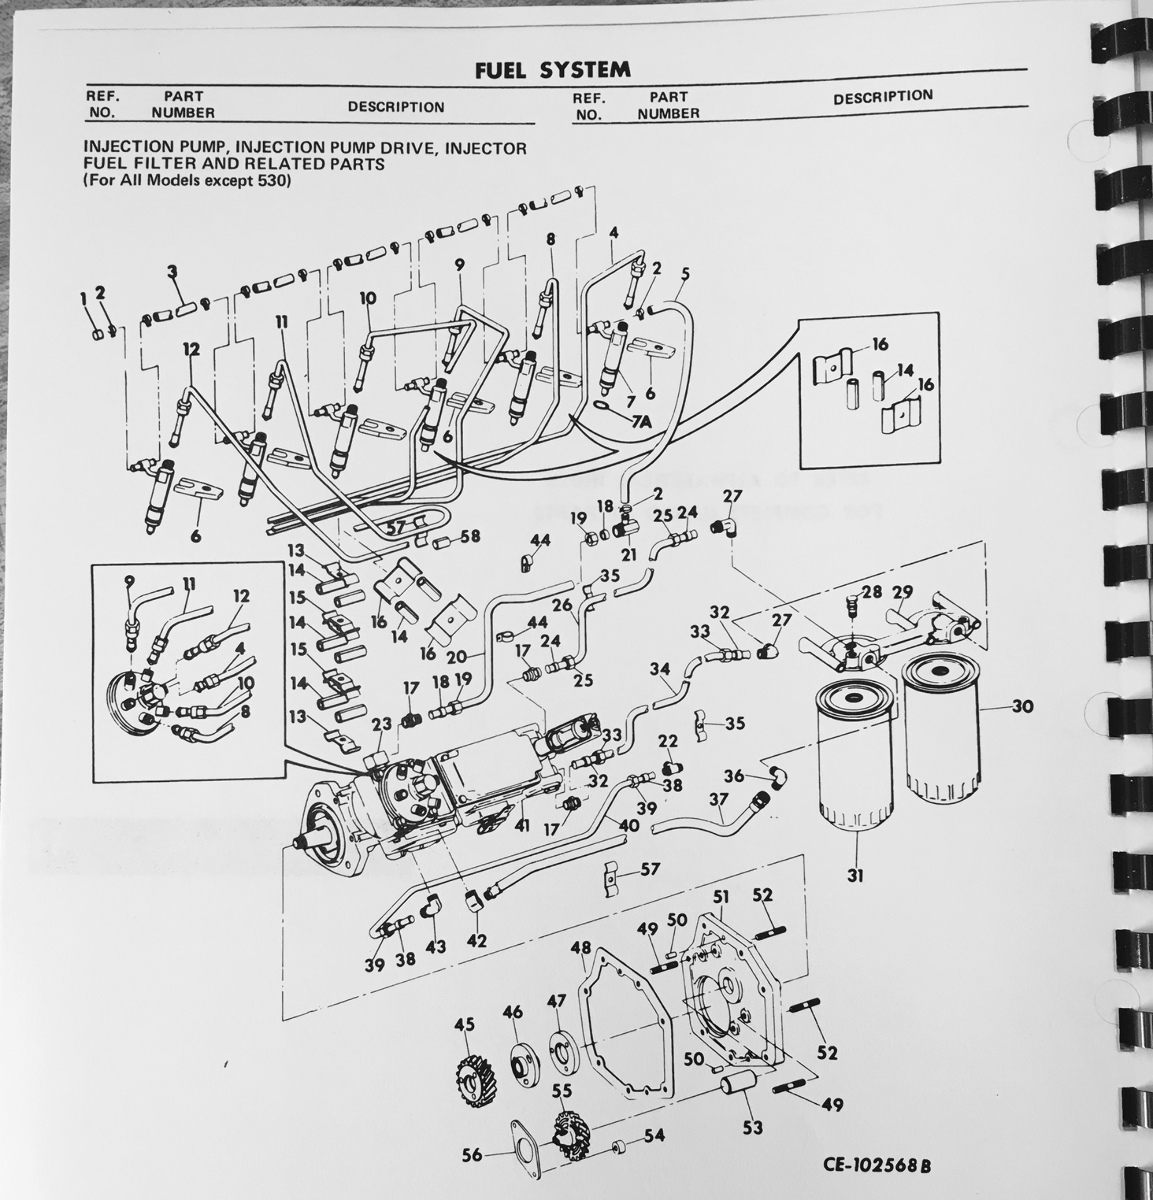 33 International Dt466 Fuel System Diagram